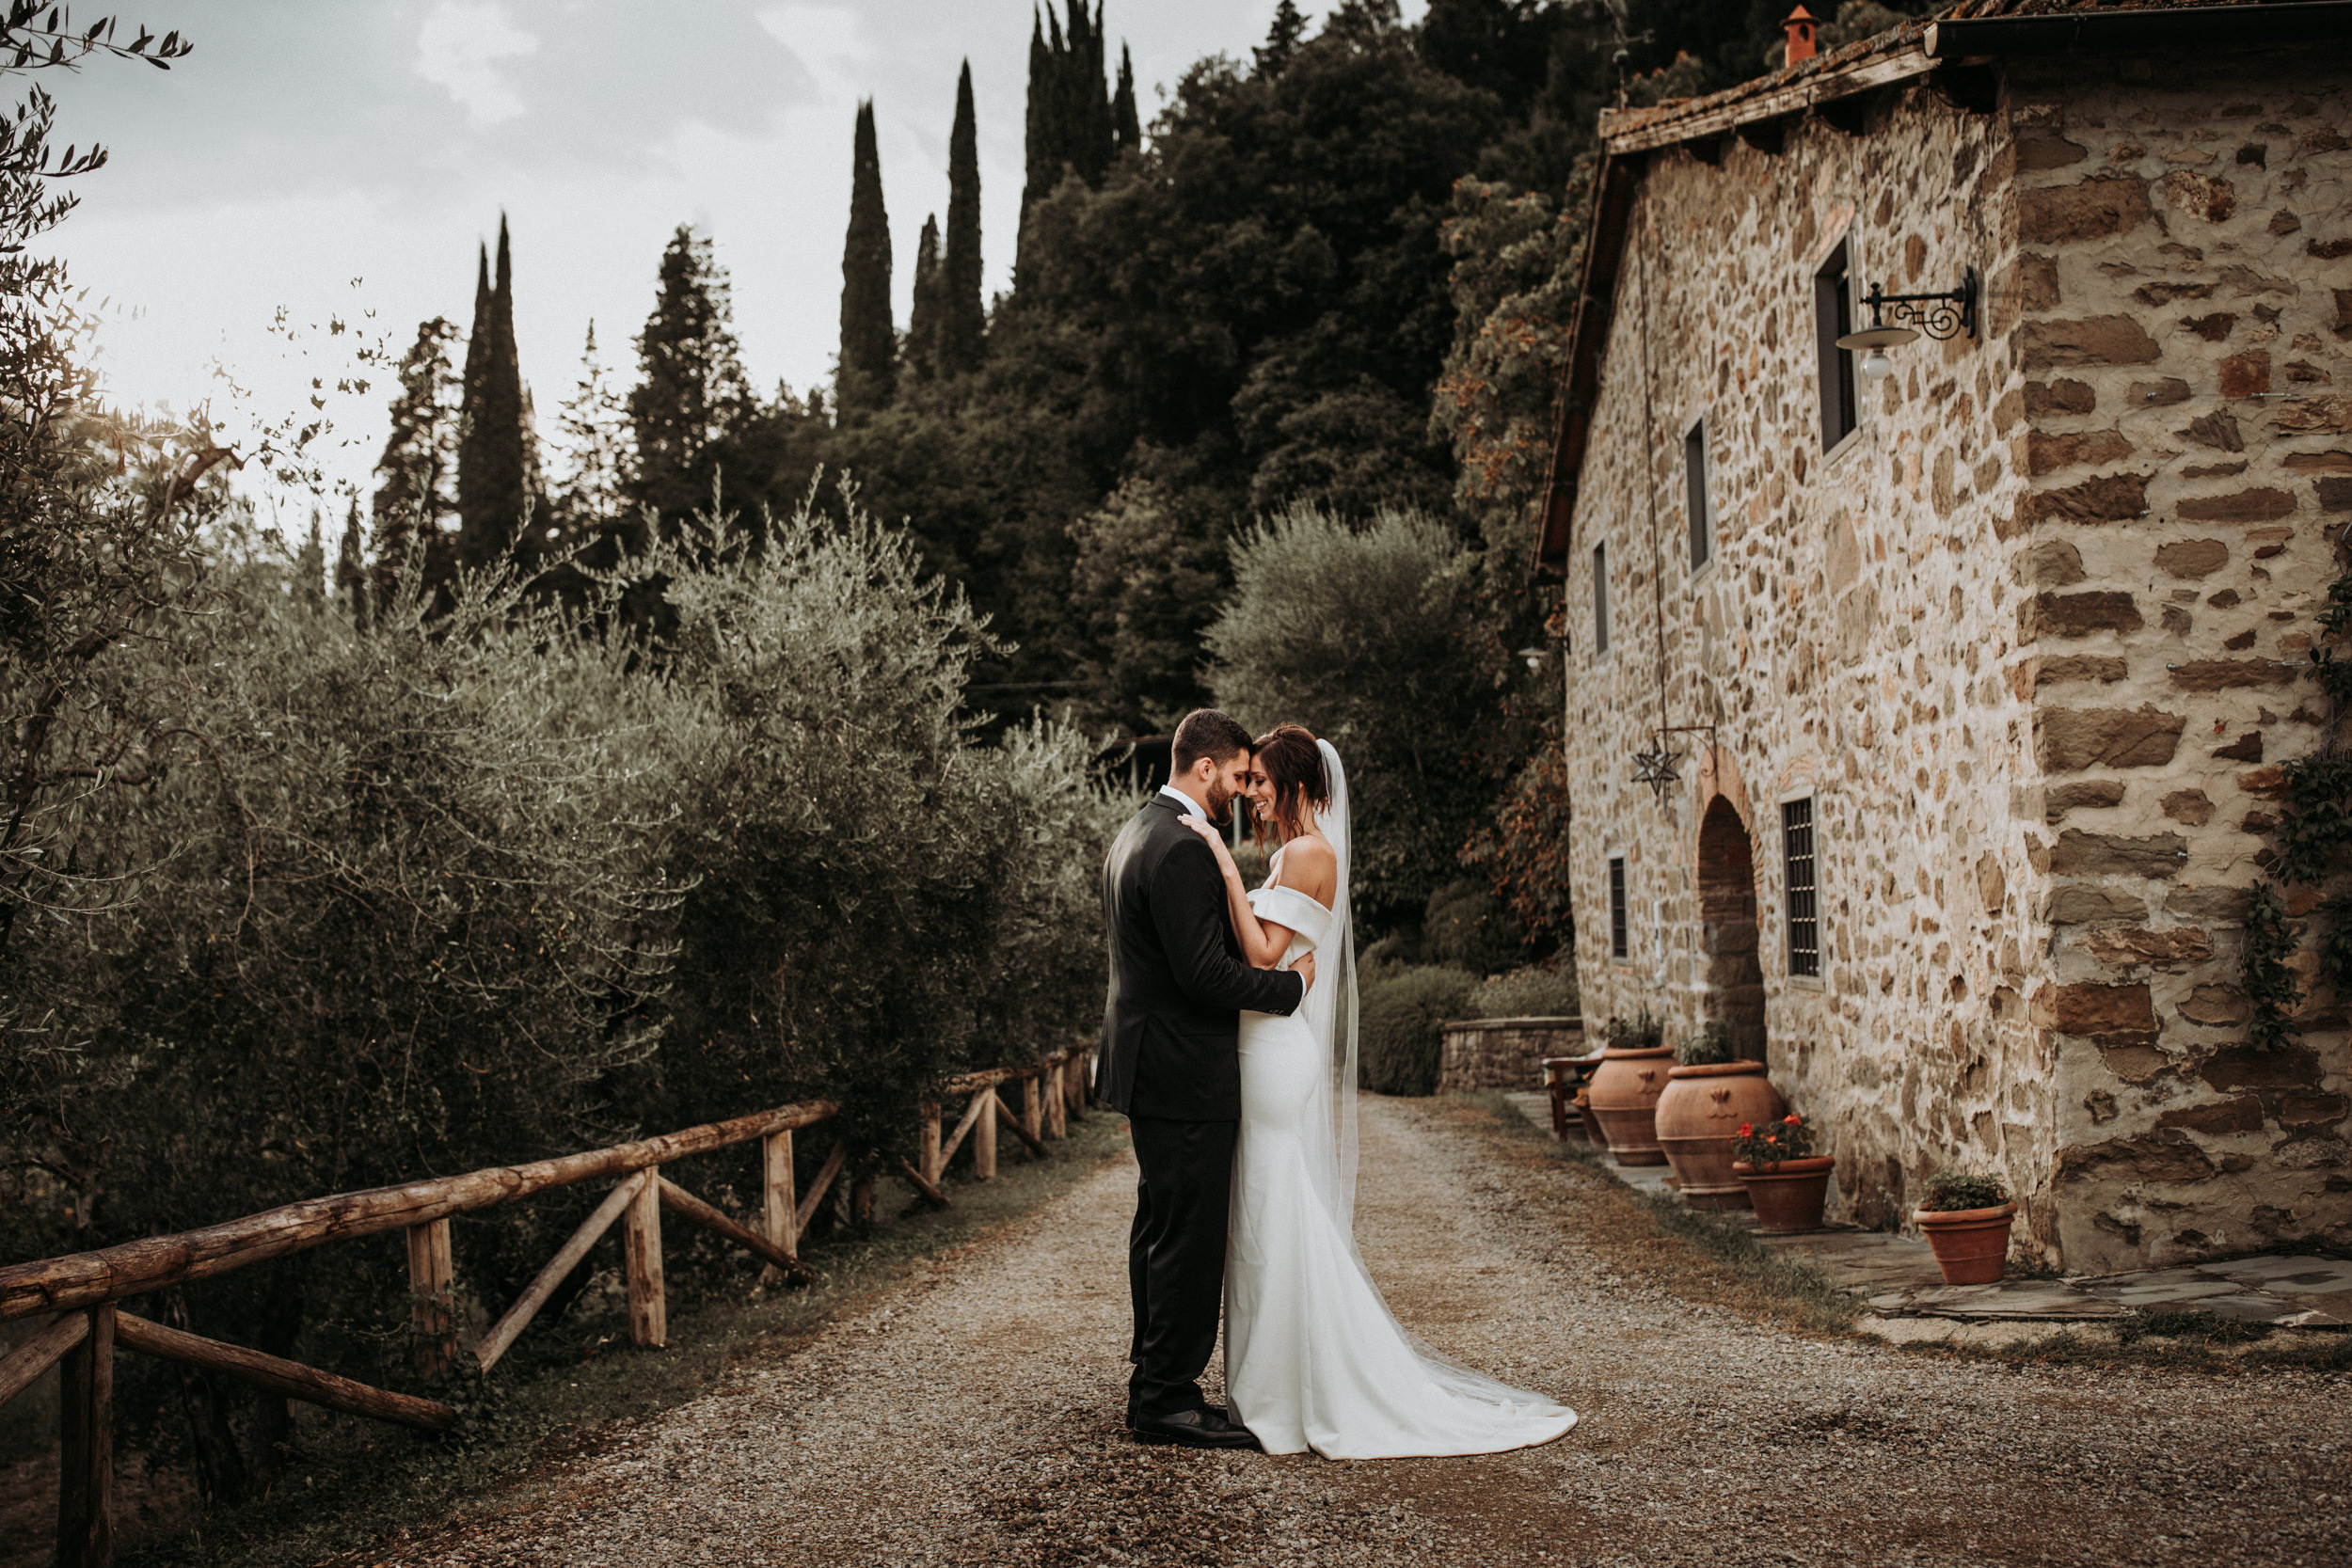 dm_photography_KW_Tuscanyweddingday_302